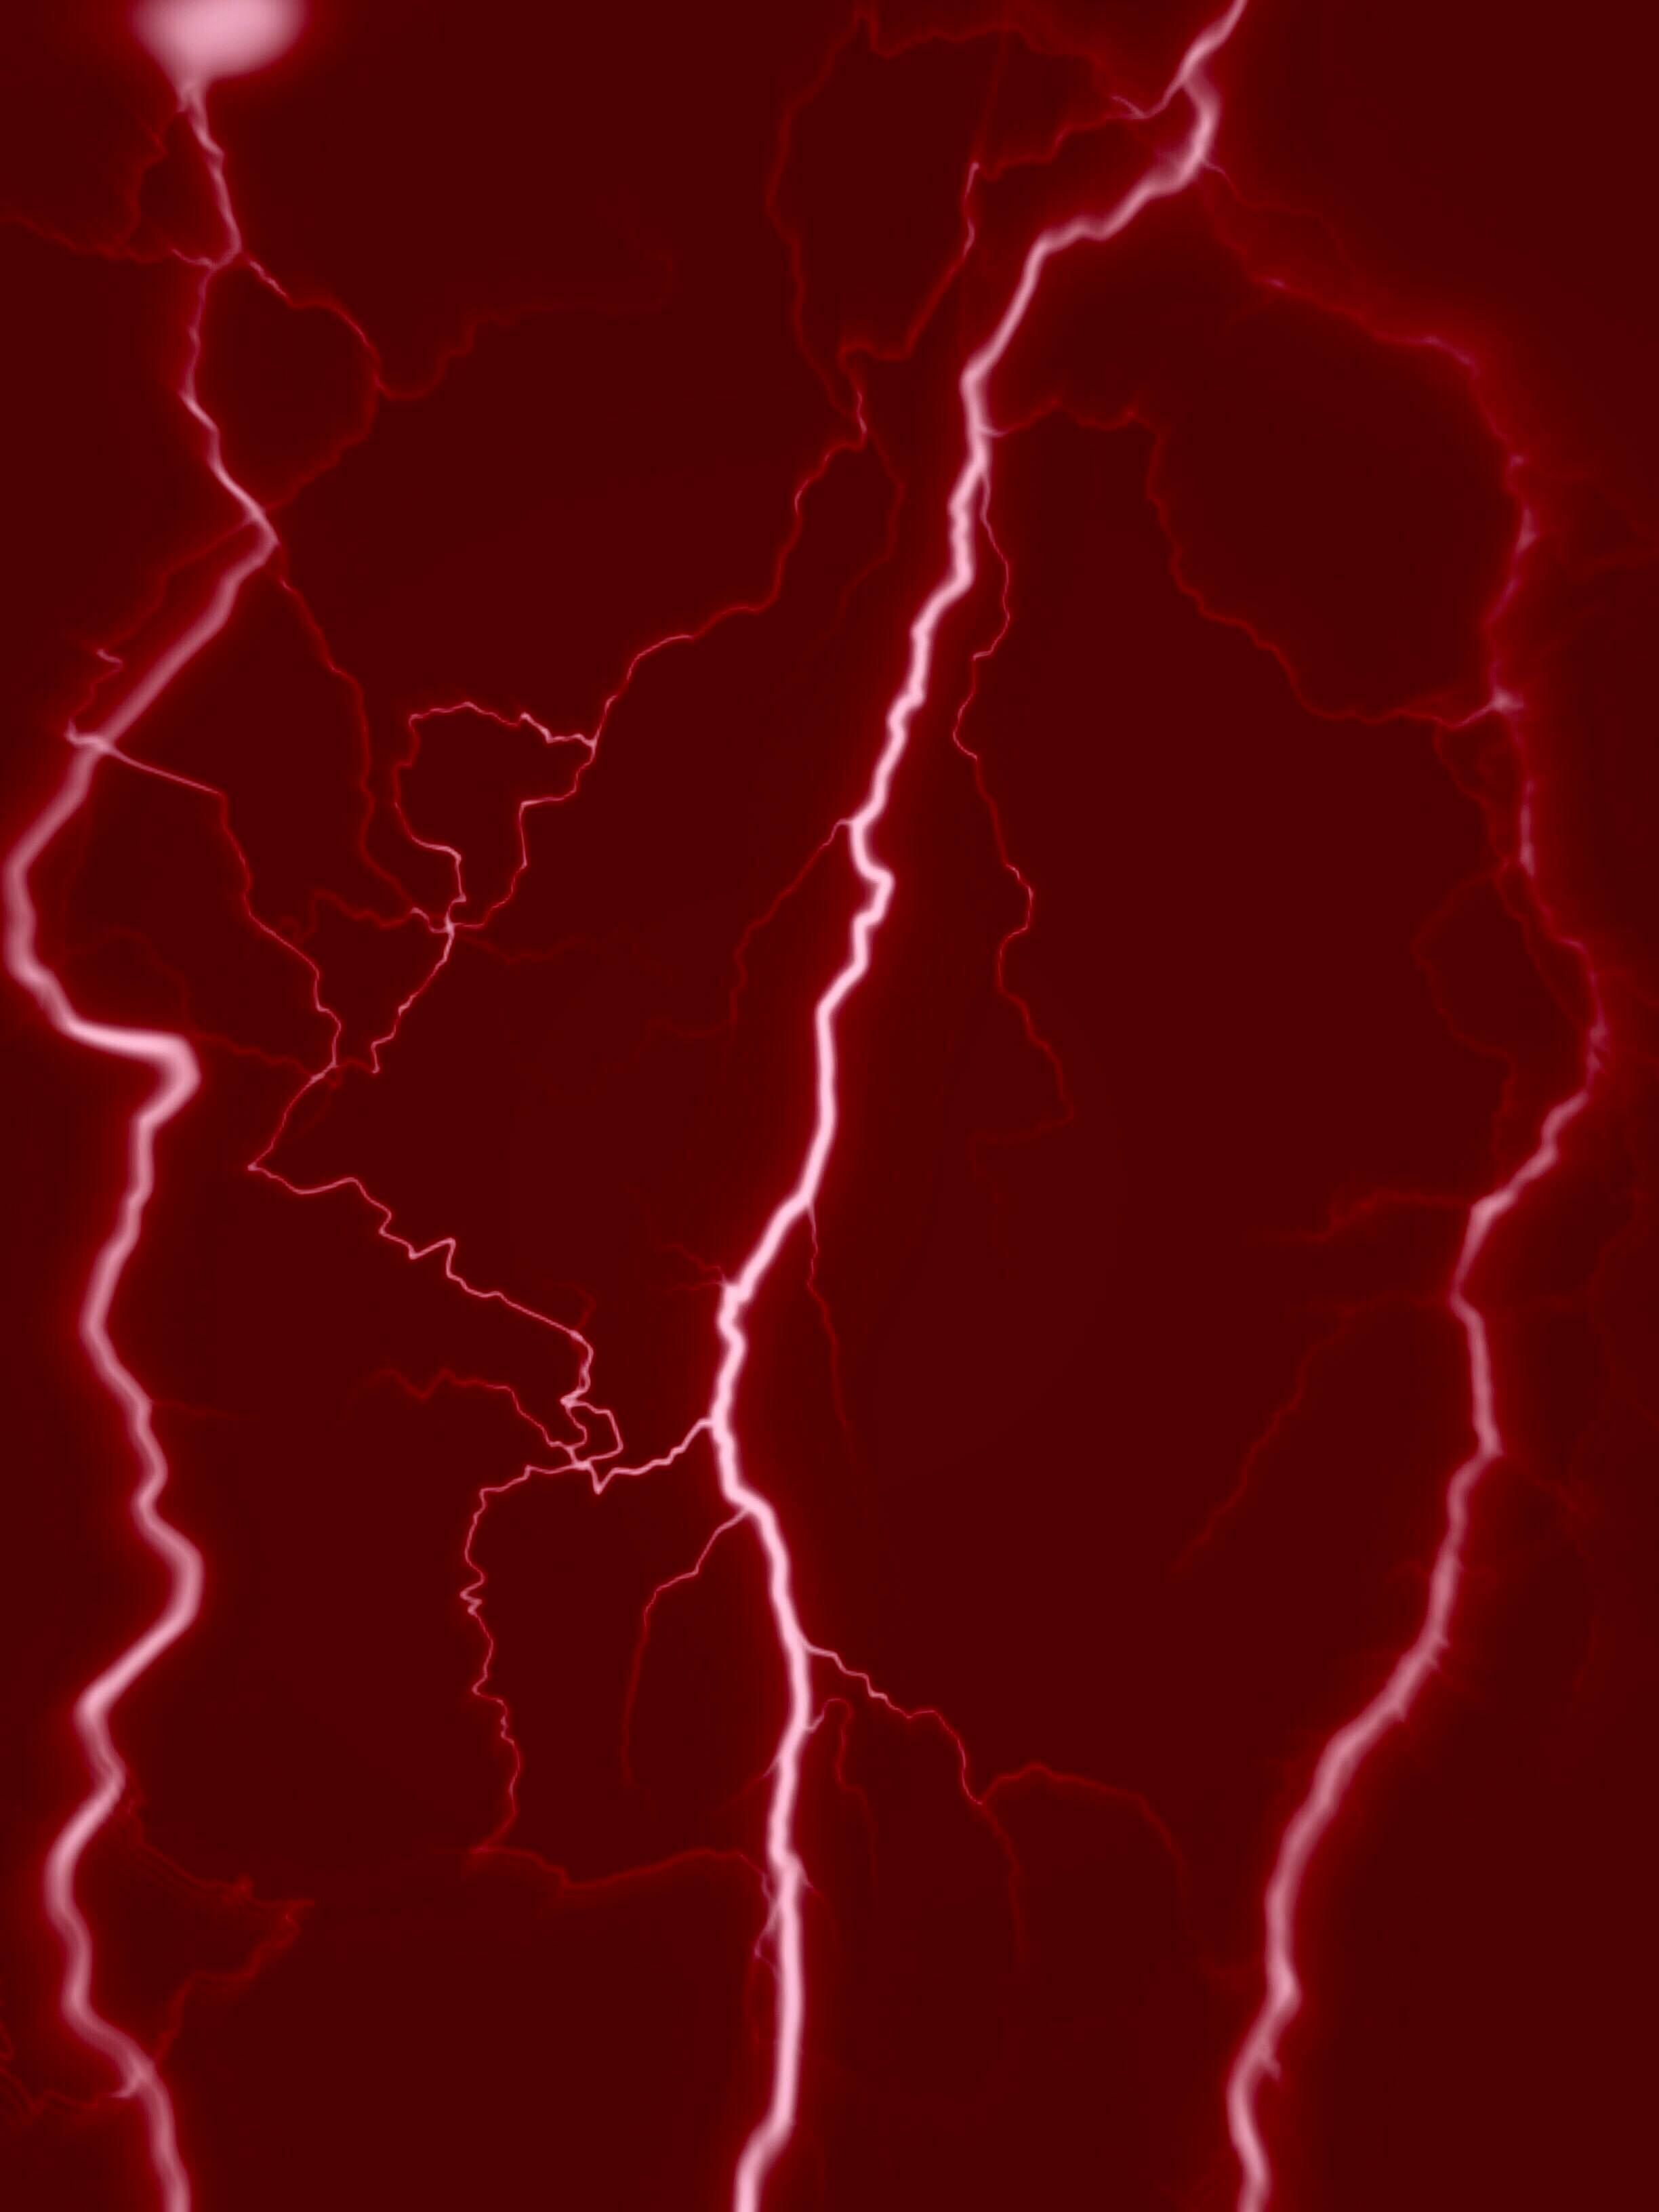 Dragon Lightening Wallpapers And Pictures 4 Items Page 1 Of 1 Red Aesthetic Red Lightning Red Aura